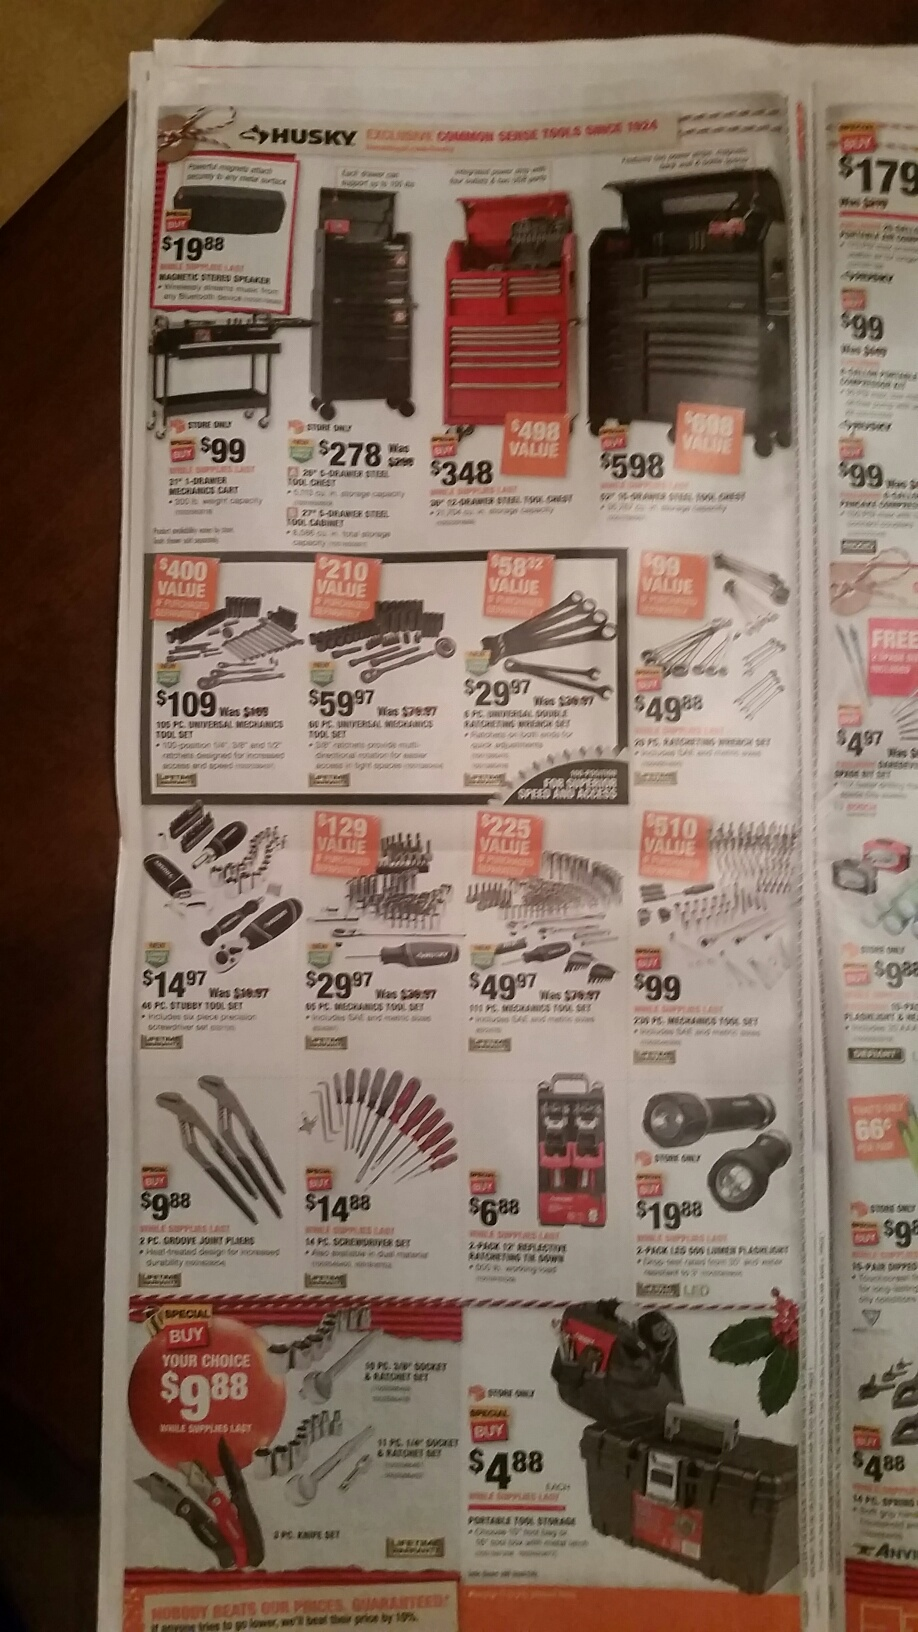 07d4de02d70 ... Home Depot s Black Friday ad for 2017  Cyber Monday Deals